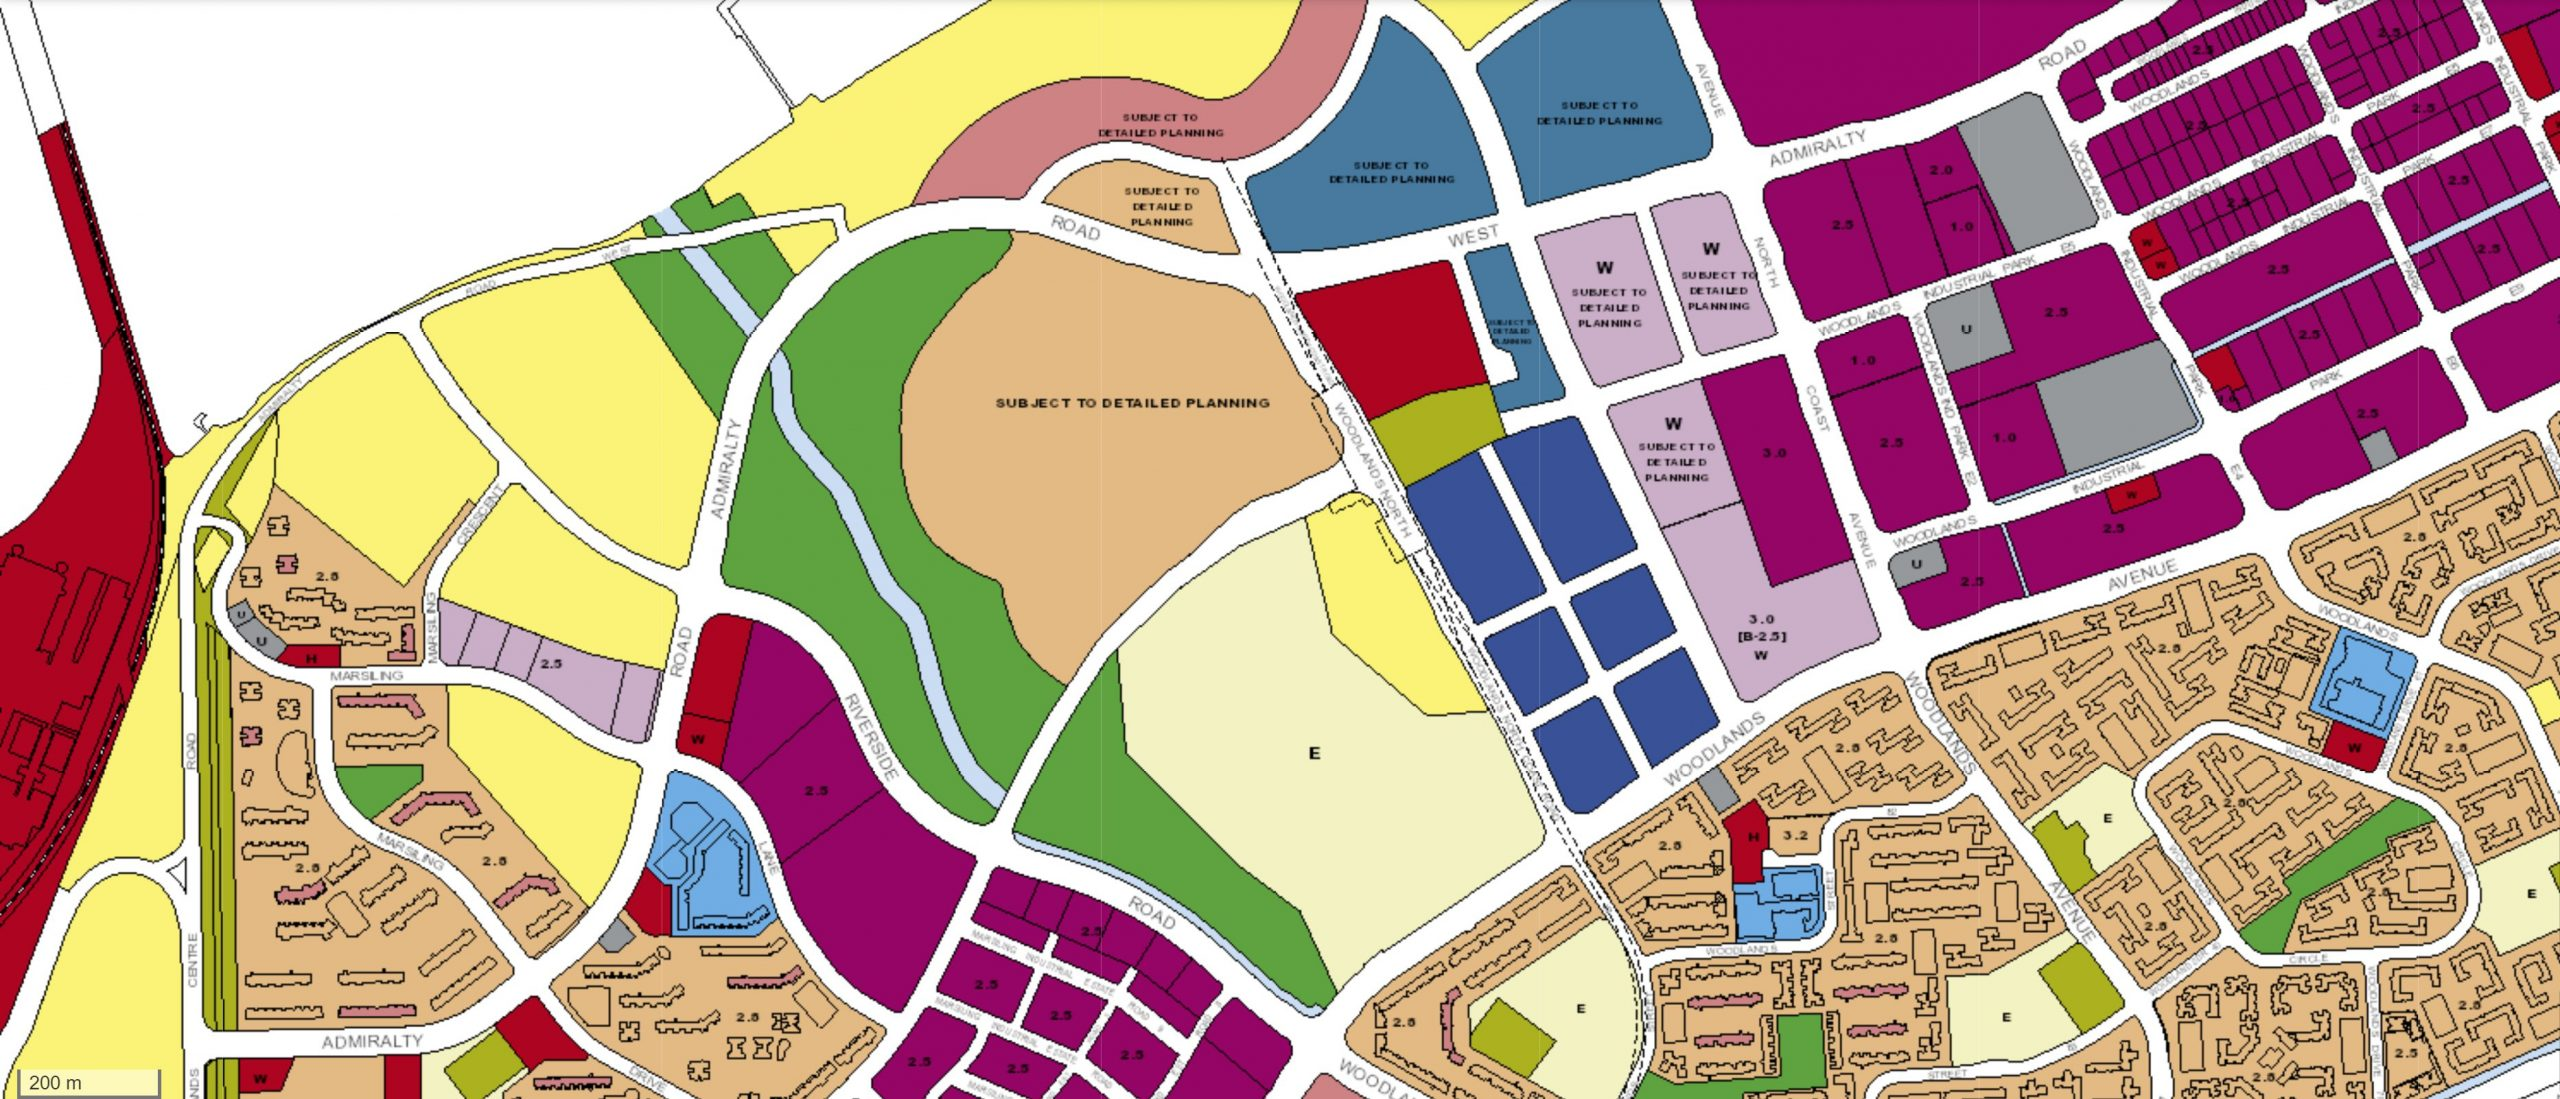 woodlands johor rts ura master plan map